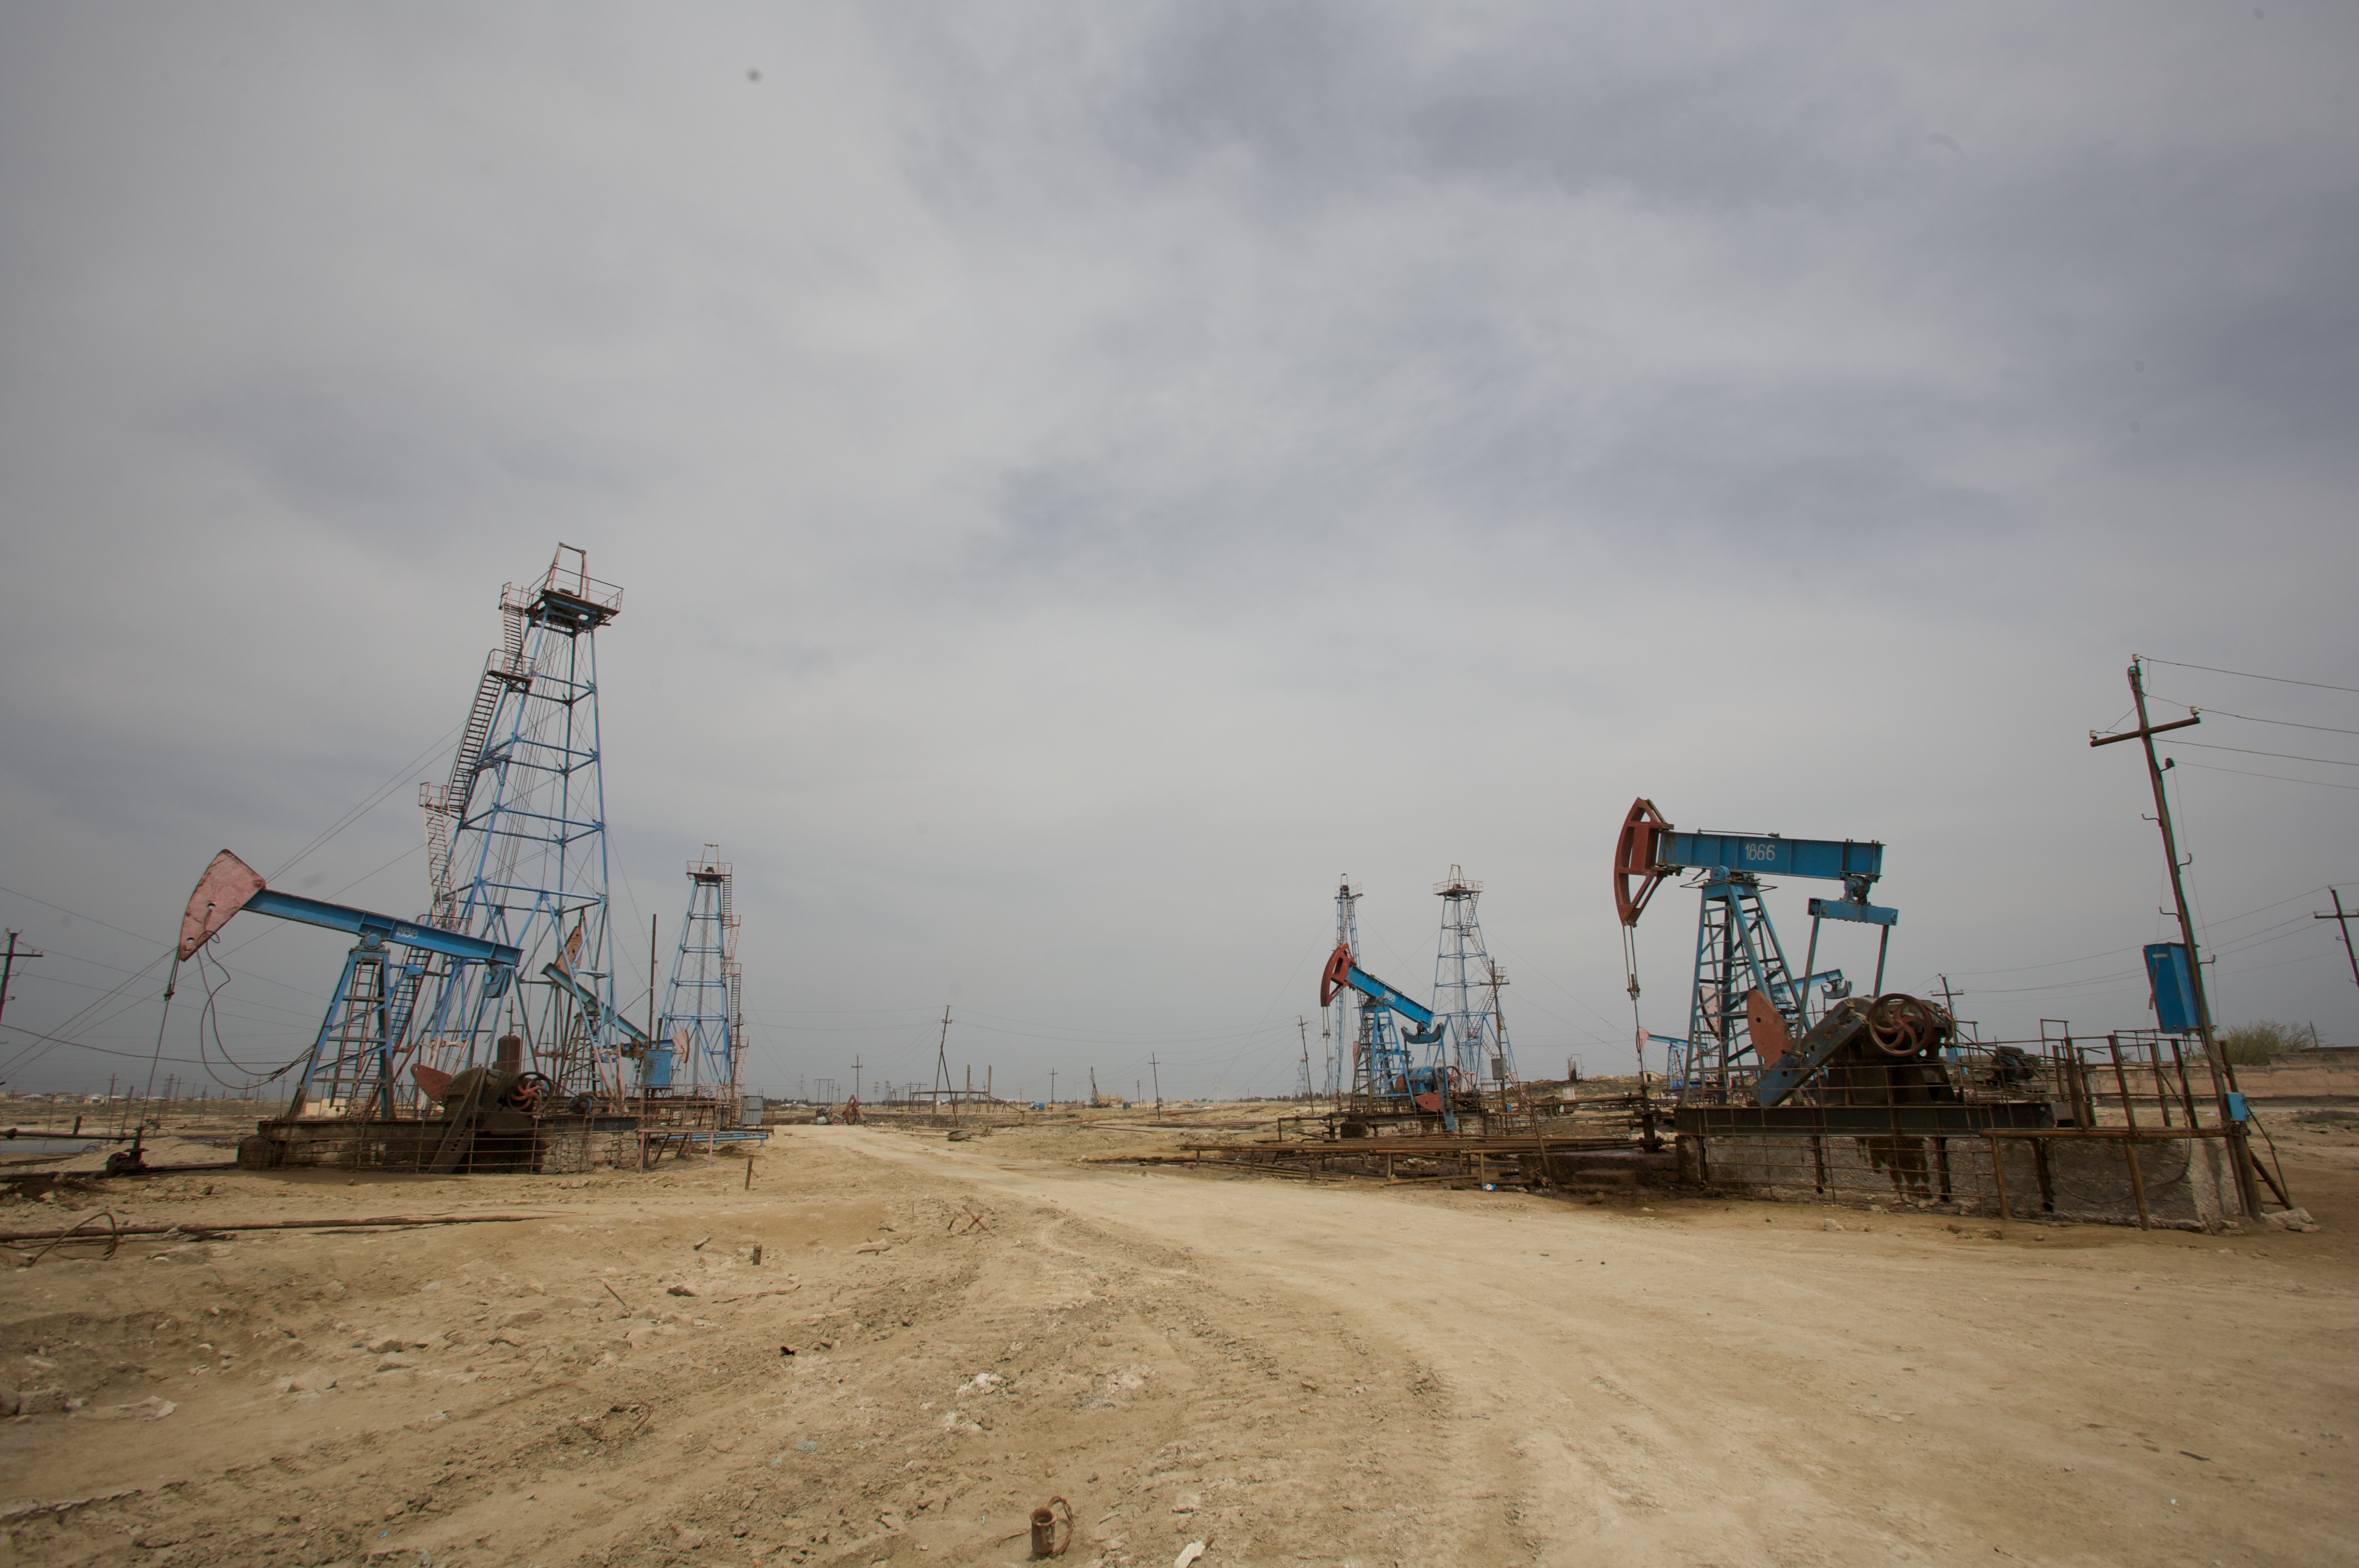 Petroleum industry in Azerbaijan - Wikipedia